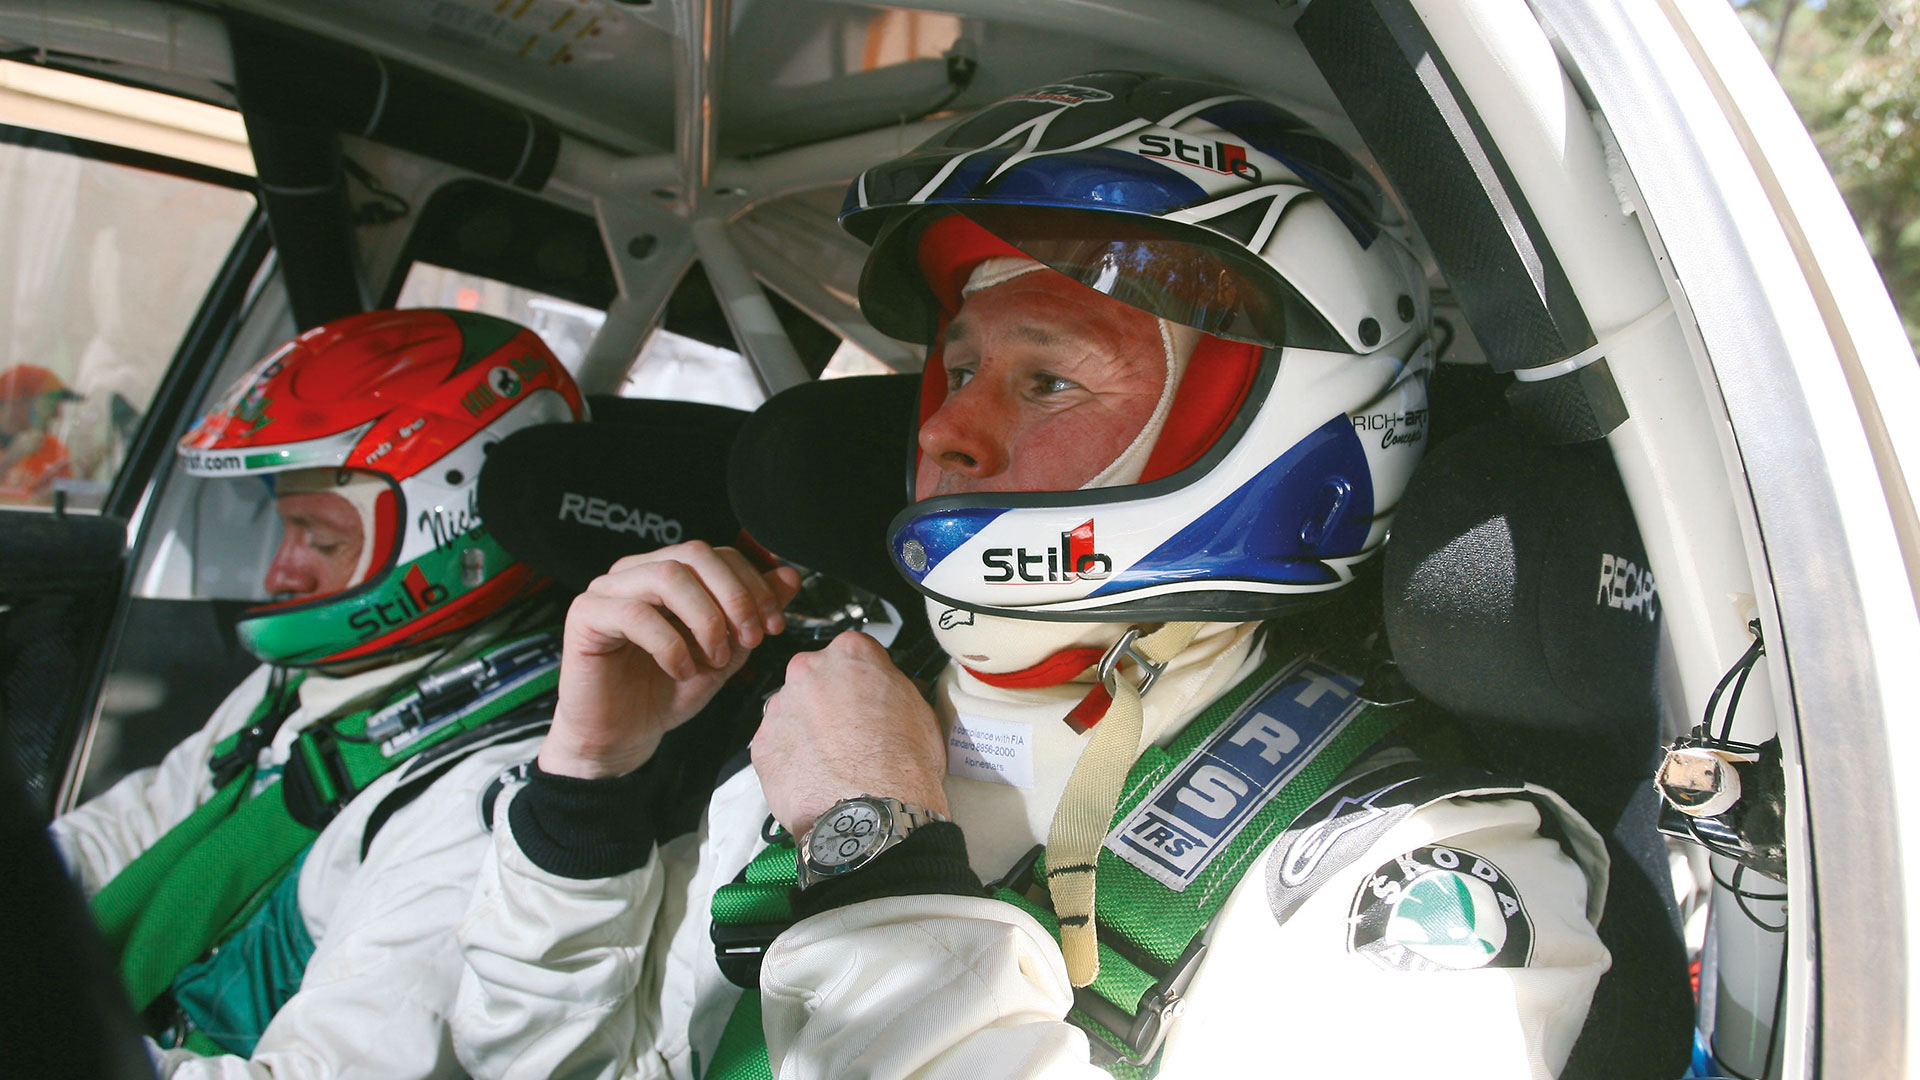 Colin McRae: The Flying Scotsman who made his WRC swansong in a FABIA WRC